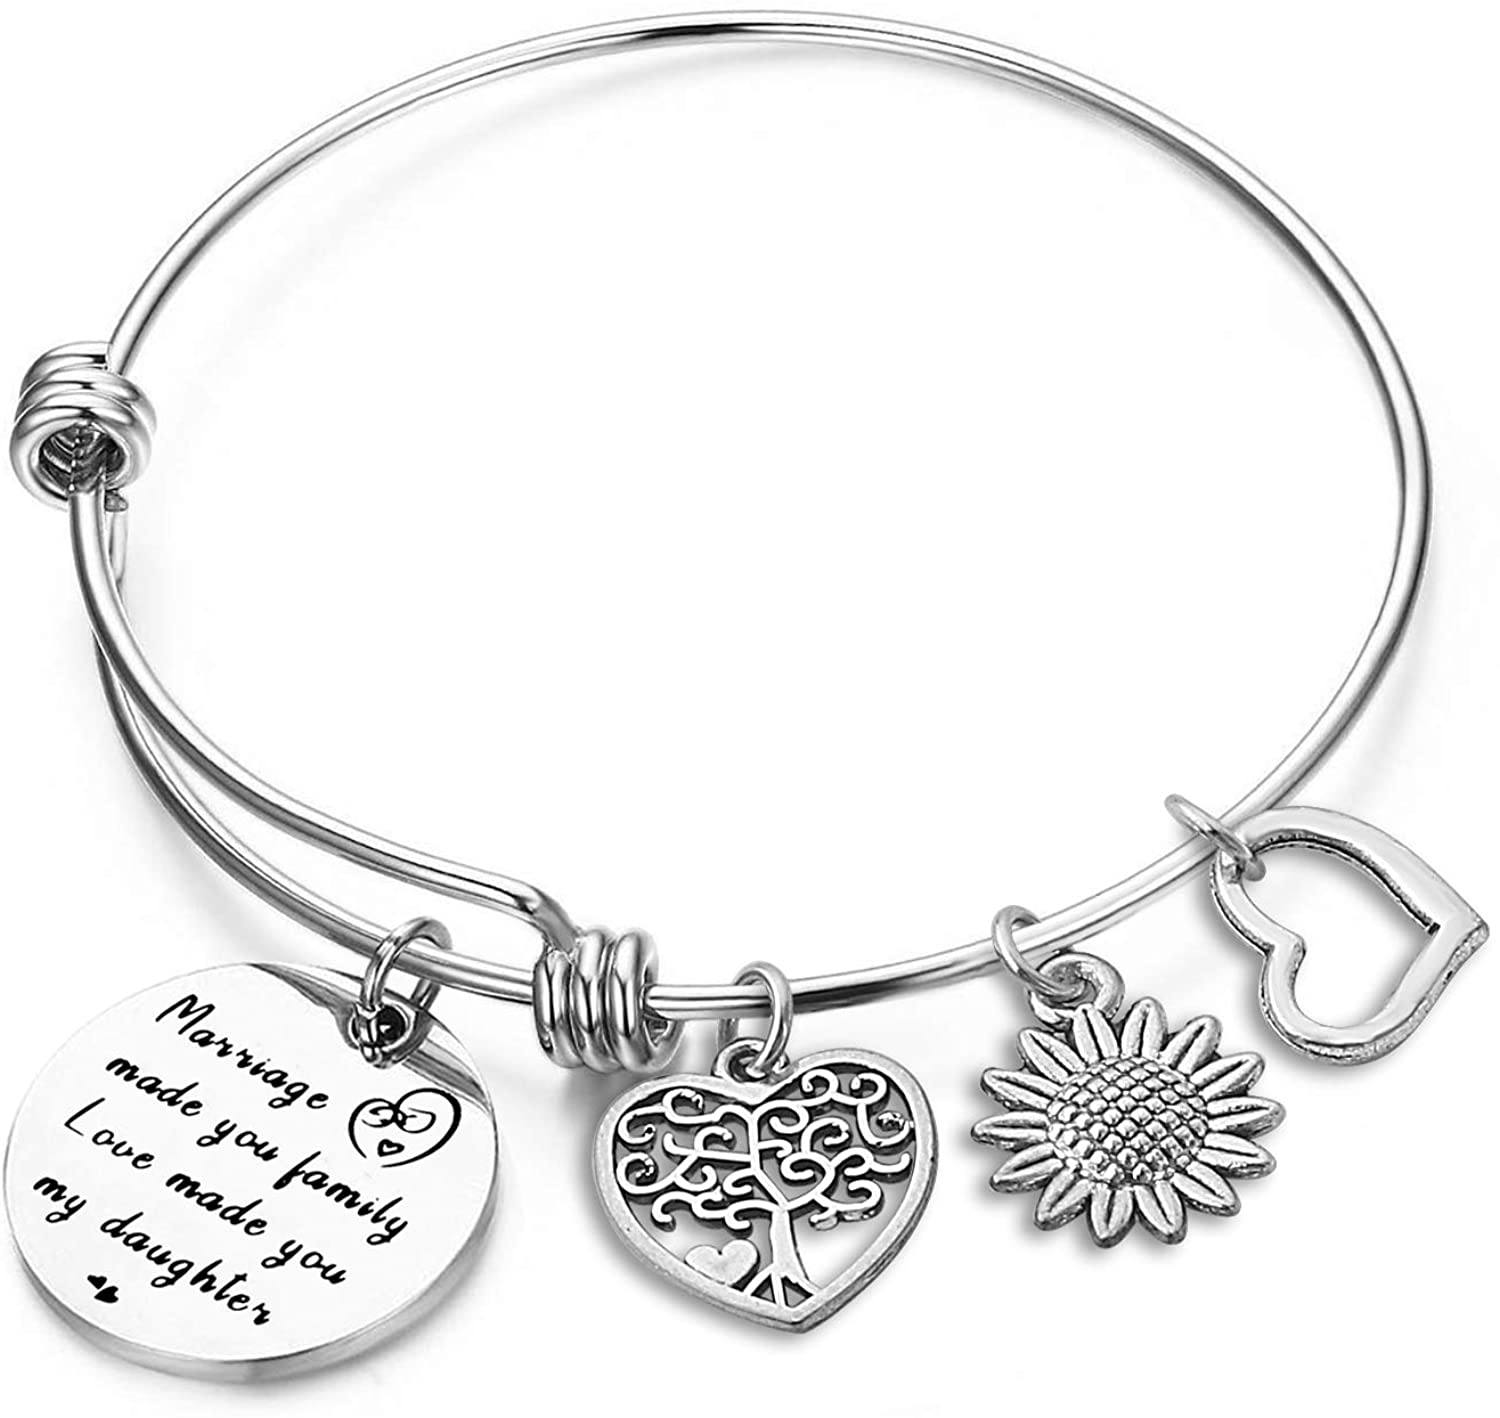 Bracelet for Mom from Daughter, Mothers and Daughters Never Truly Part Maybe in Distance But Never in Heart, Long Distance Bangle Bracelet for Mom